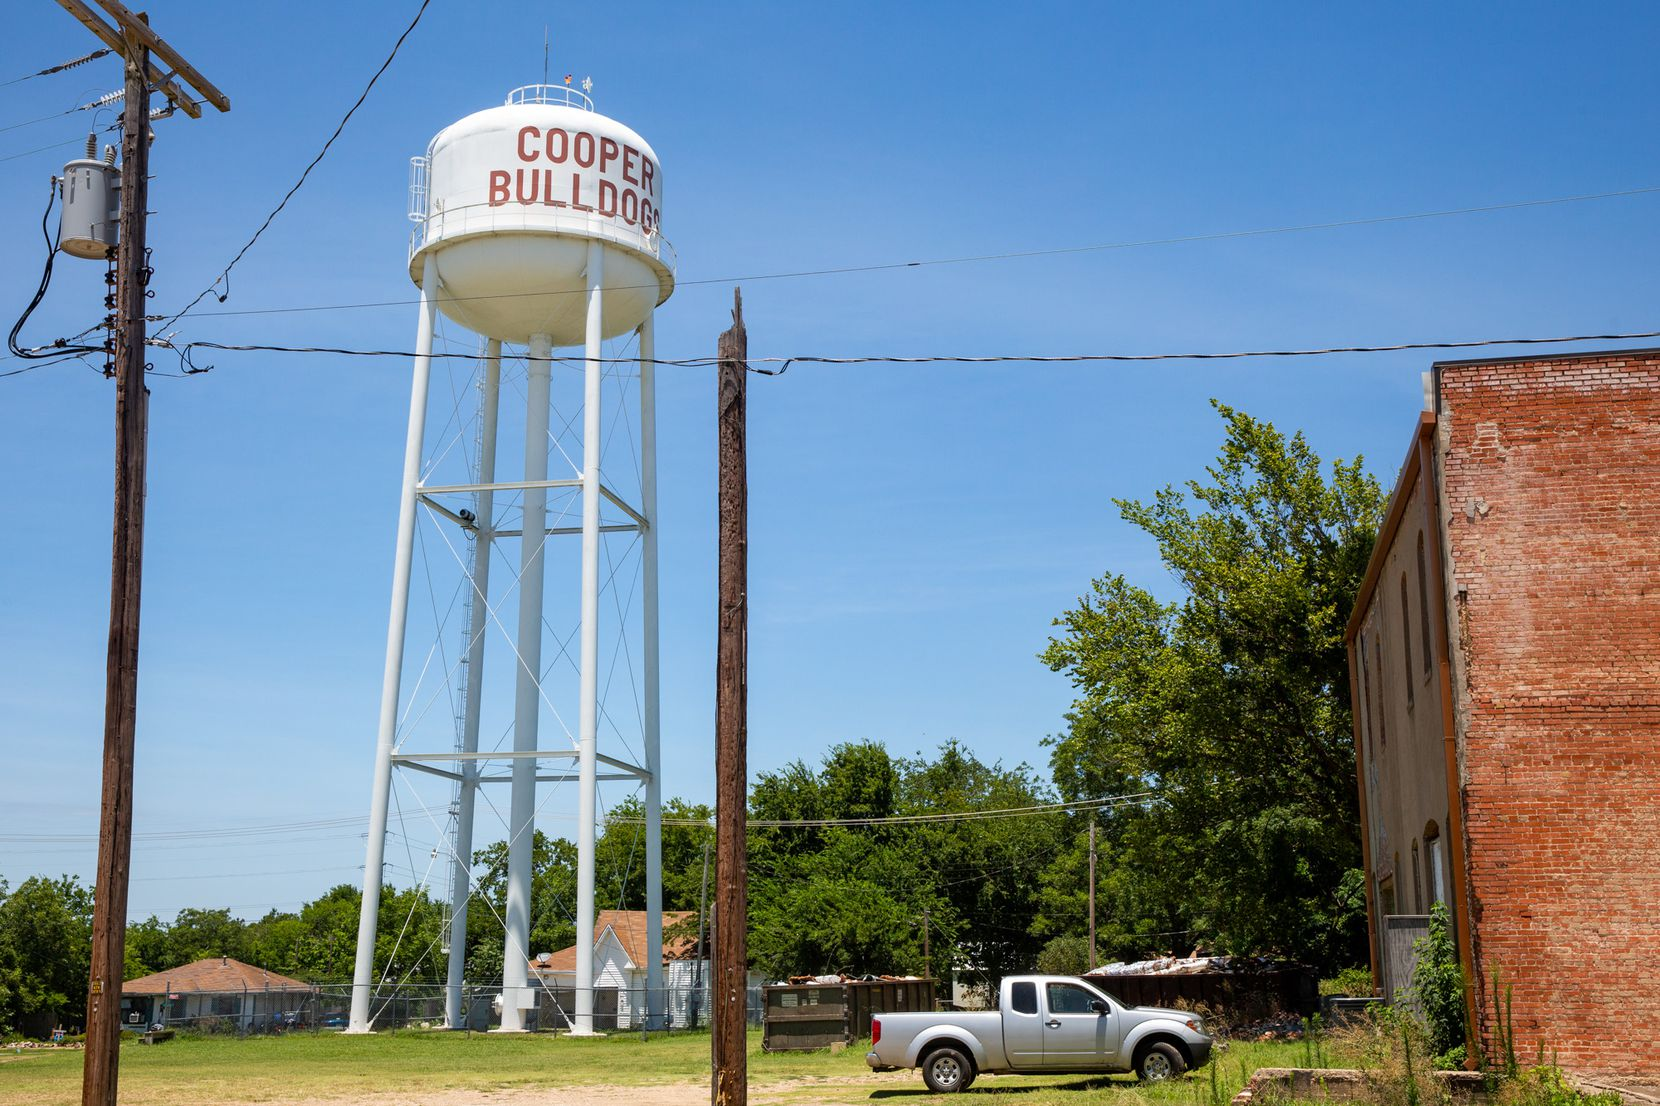 The water tower in Cooper, Texas, as seen on July 11, 2019. The Texas Department of Banking closed the local Enloe State Bank in late May 2019, and the former president has now pleaded guilty to conspiracy to commit bank fraud and arson for stealing from the bank.